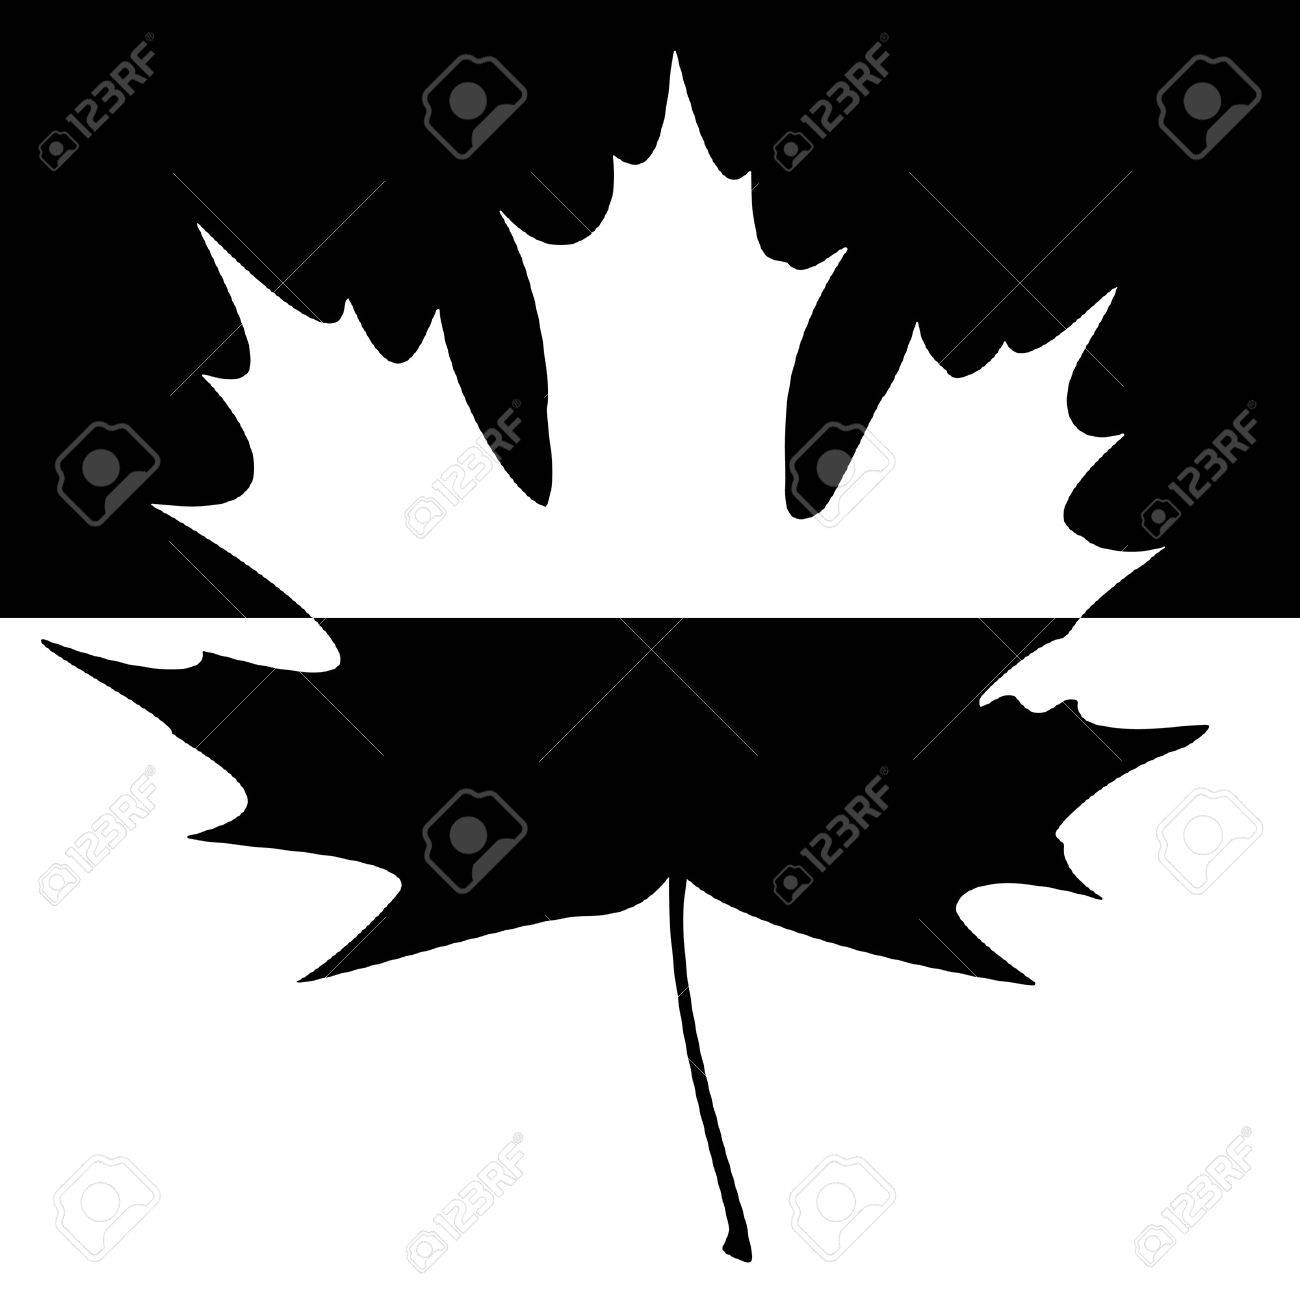 Half shaded carved maple leaf. EPS10 vector illustration. Stock Vector - 15256587